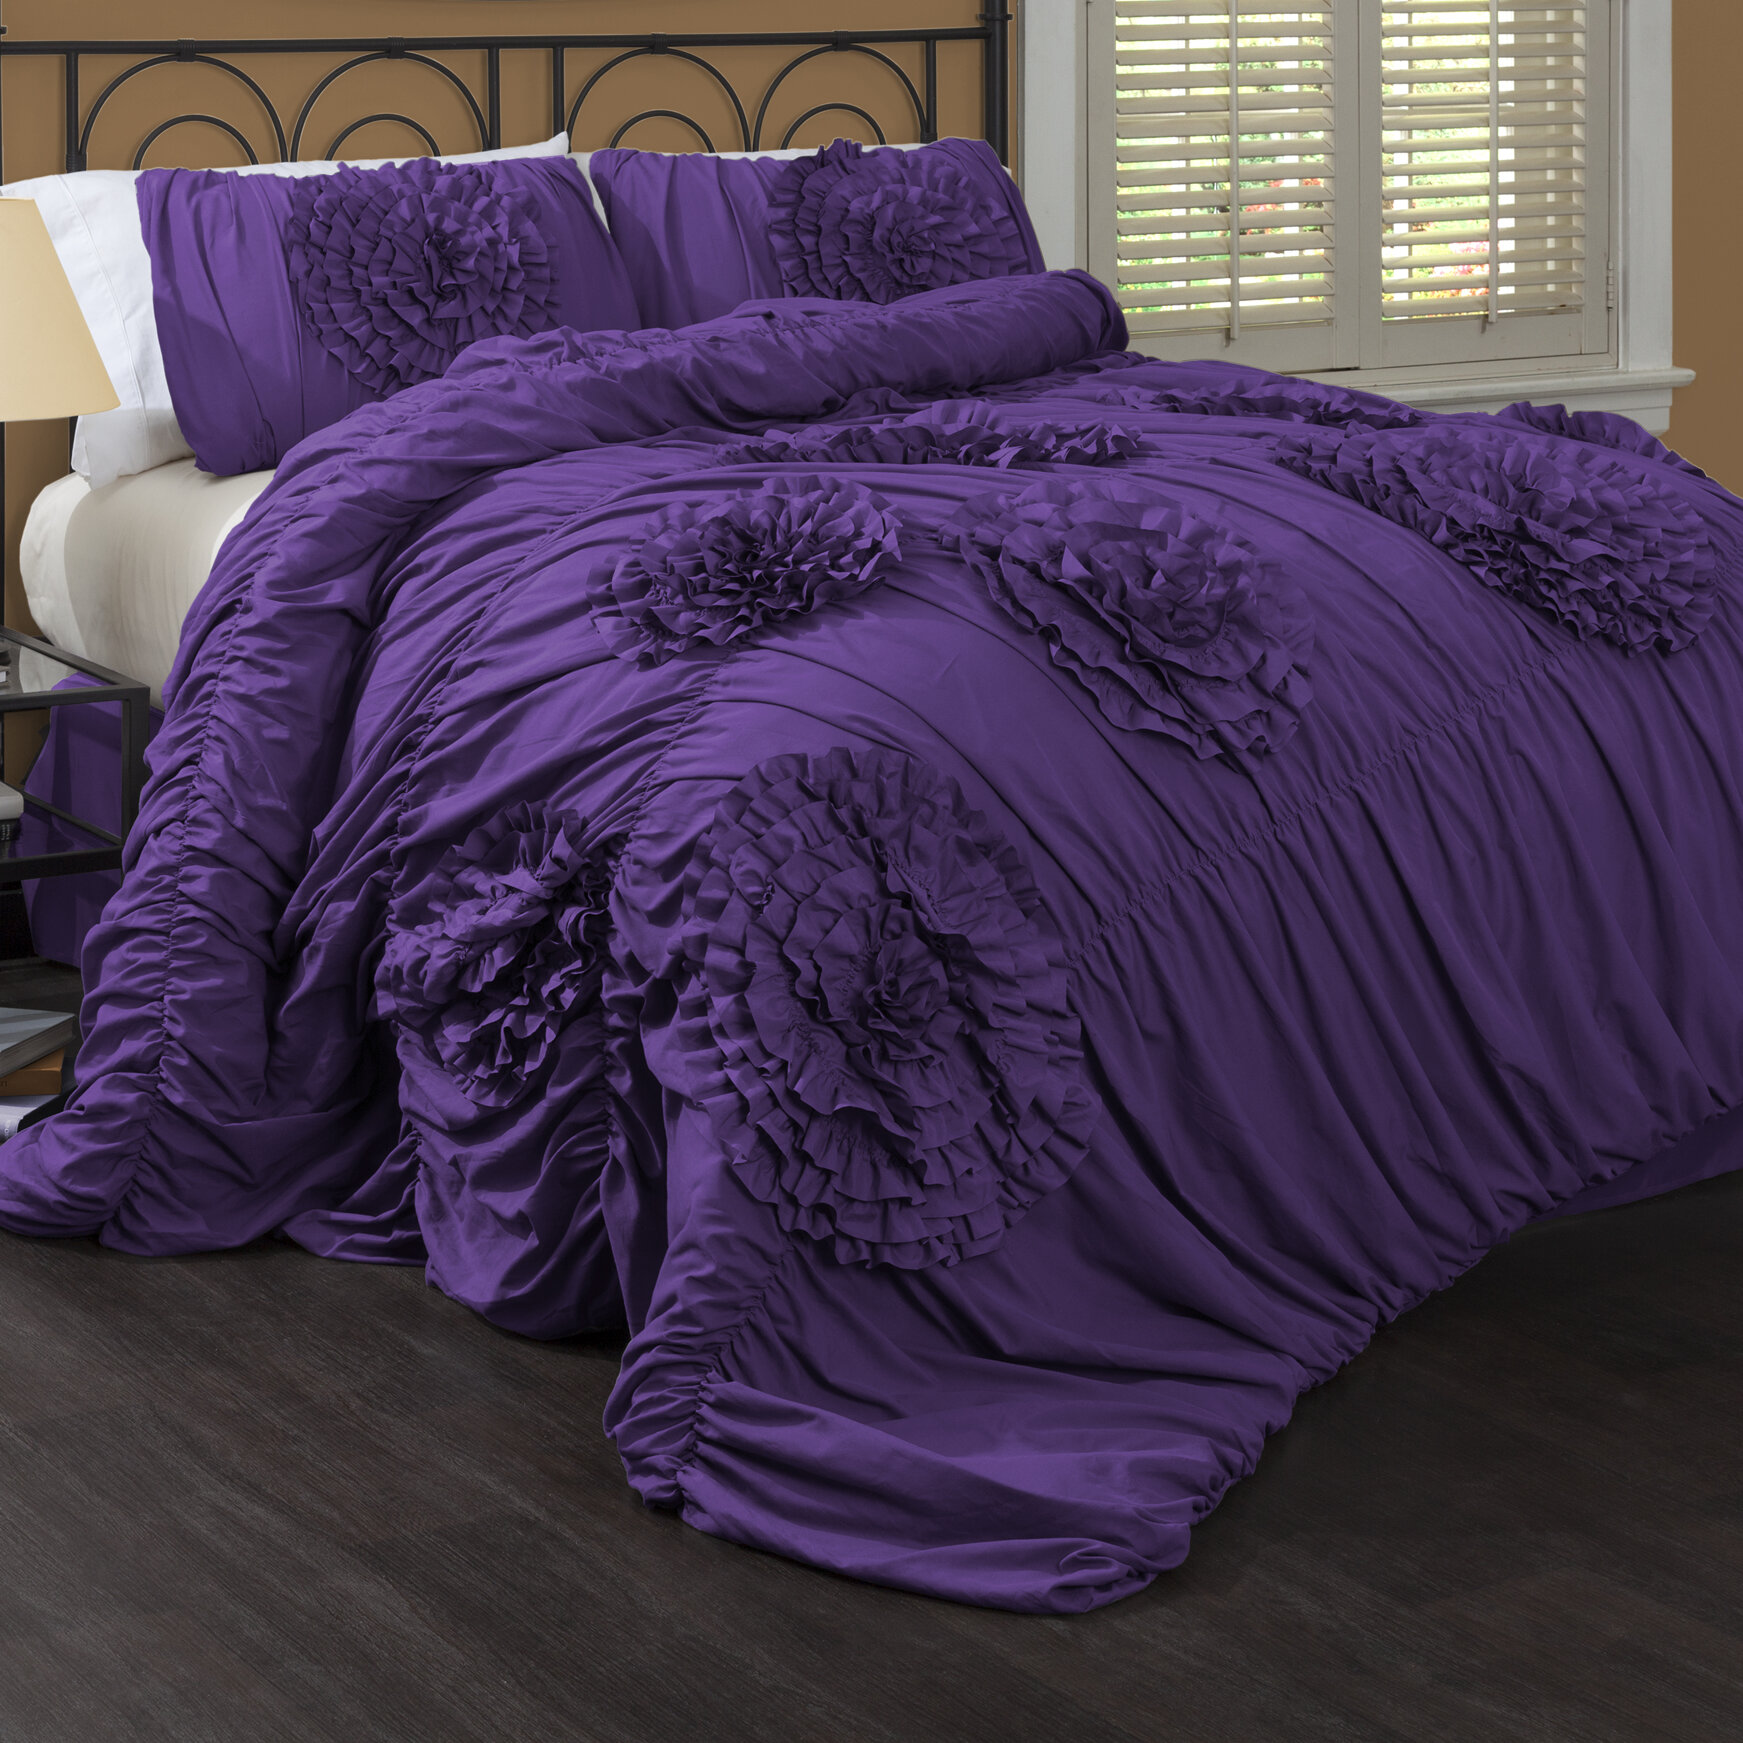 black bedding lostcoastshuttle good cover purple lavender bed image of duvet set ideas and sets